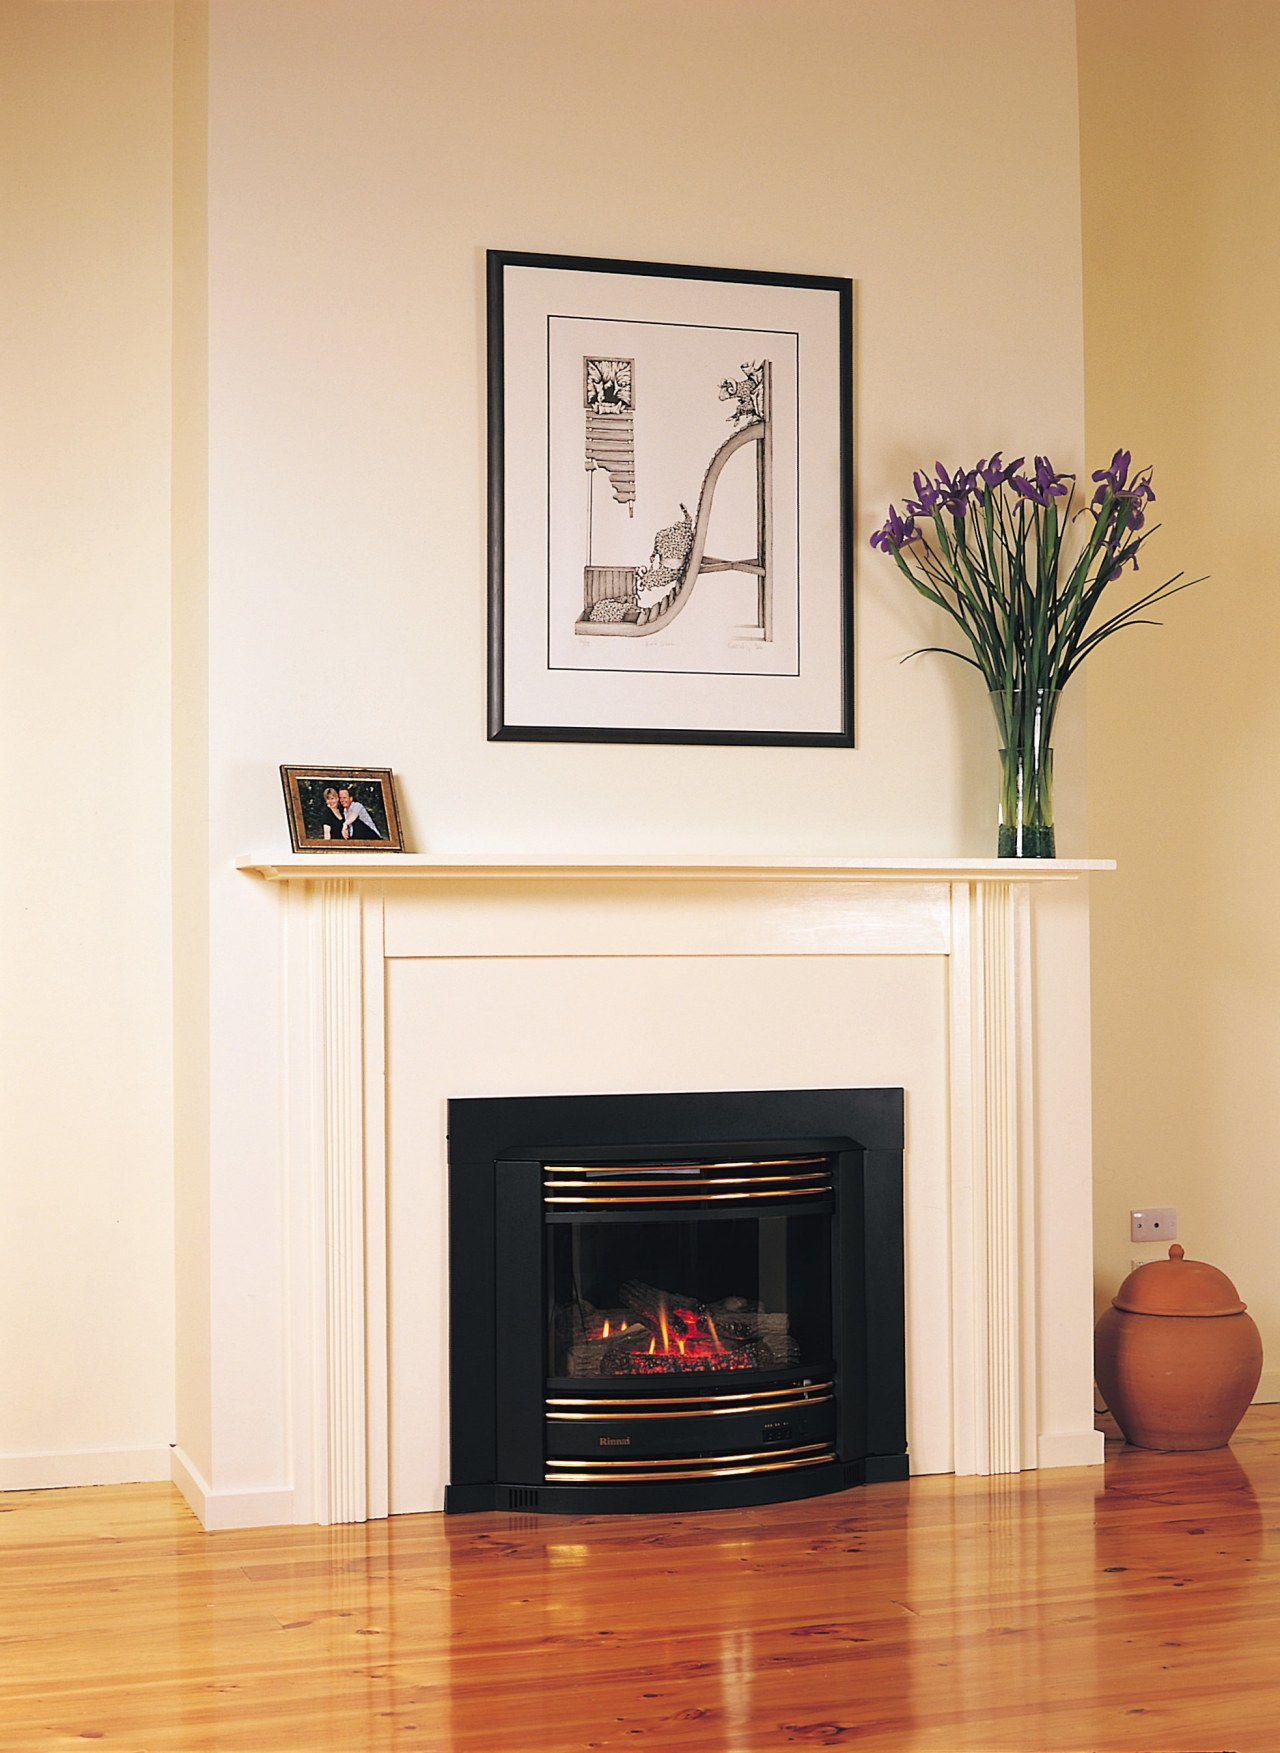 Gas fireplace in black finish with surround extended fireplace, furniture, hearth, home, interior design, living room, white, orange